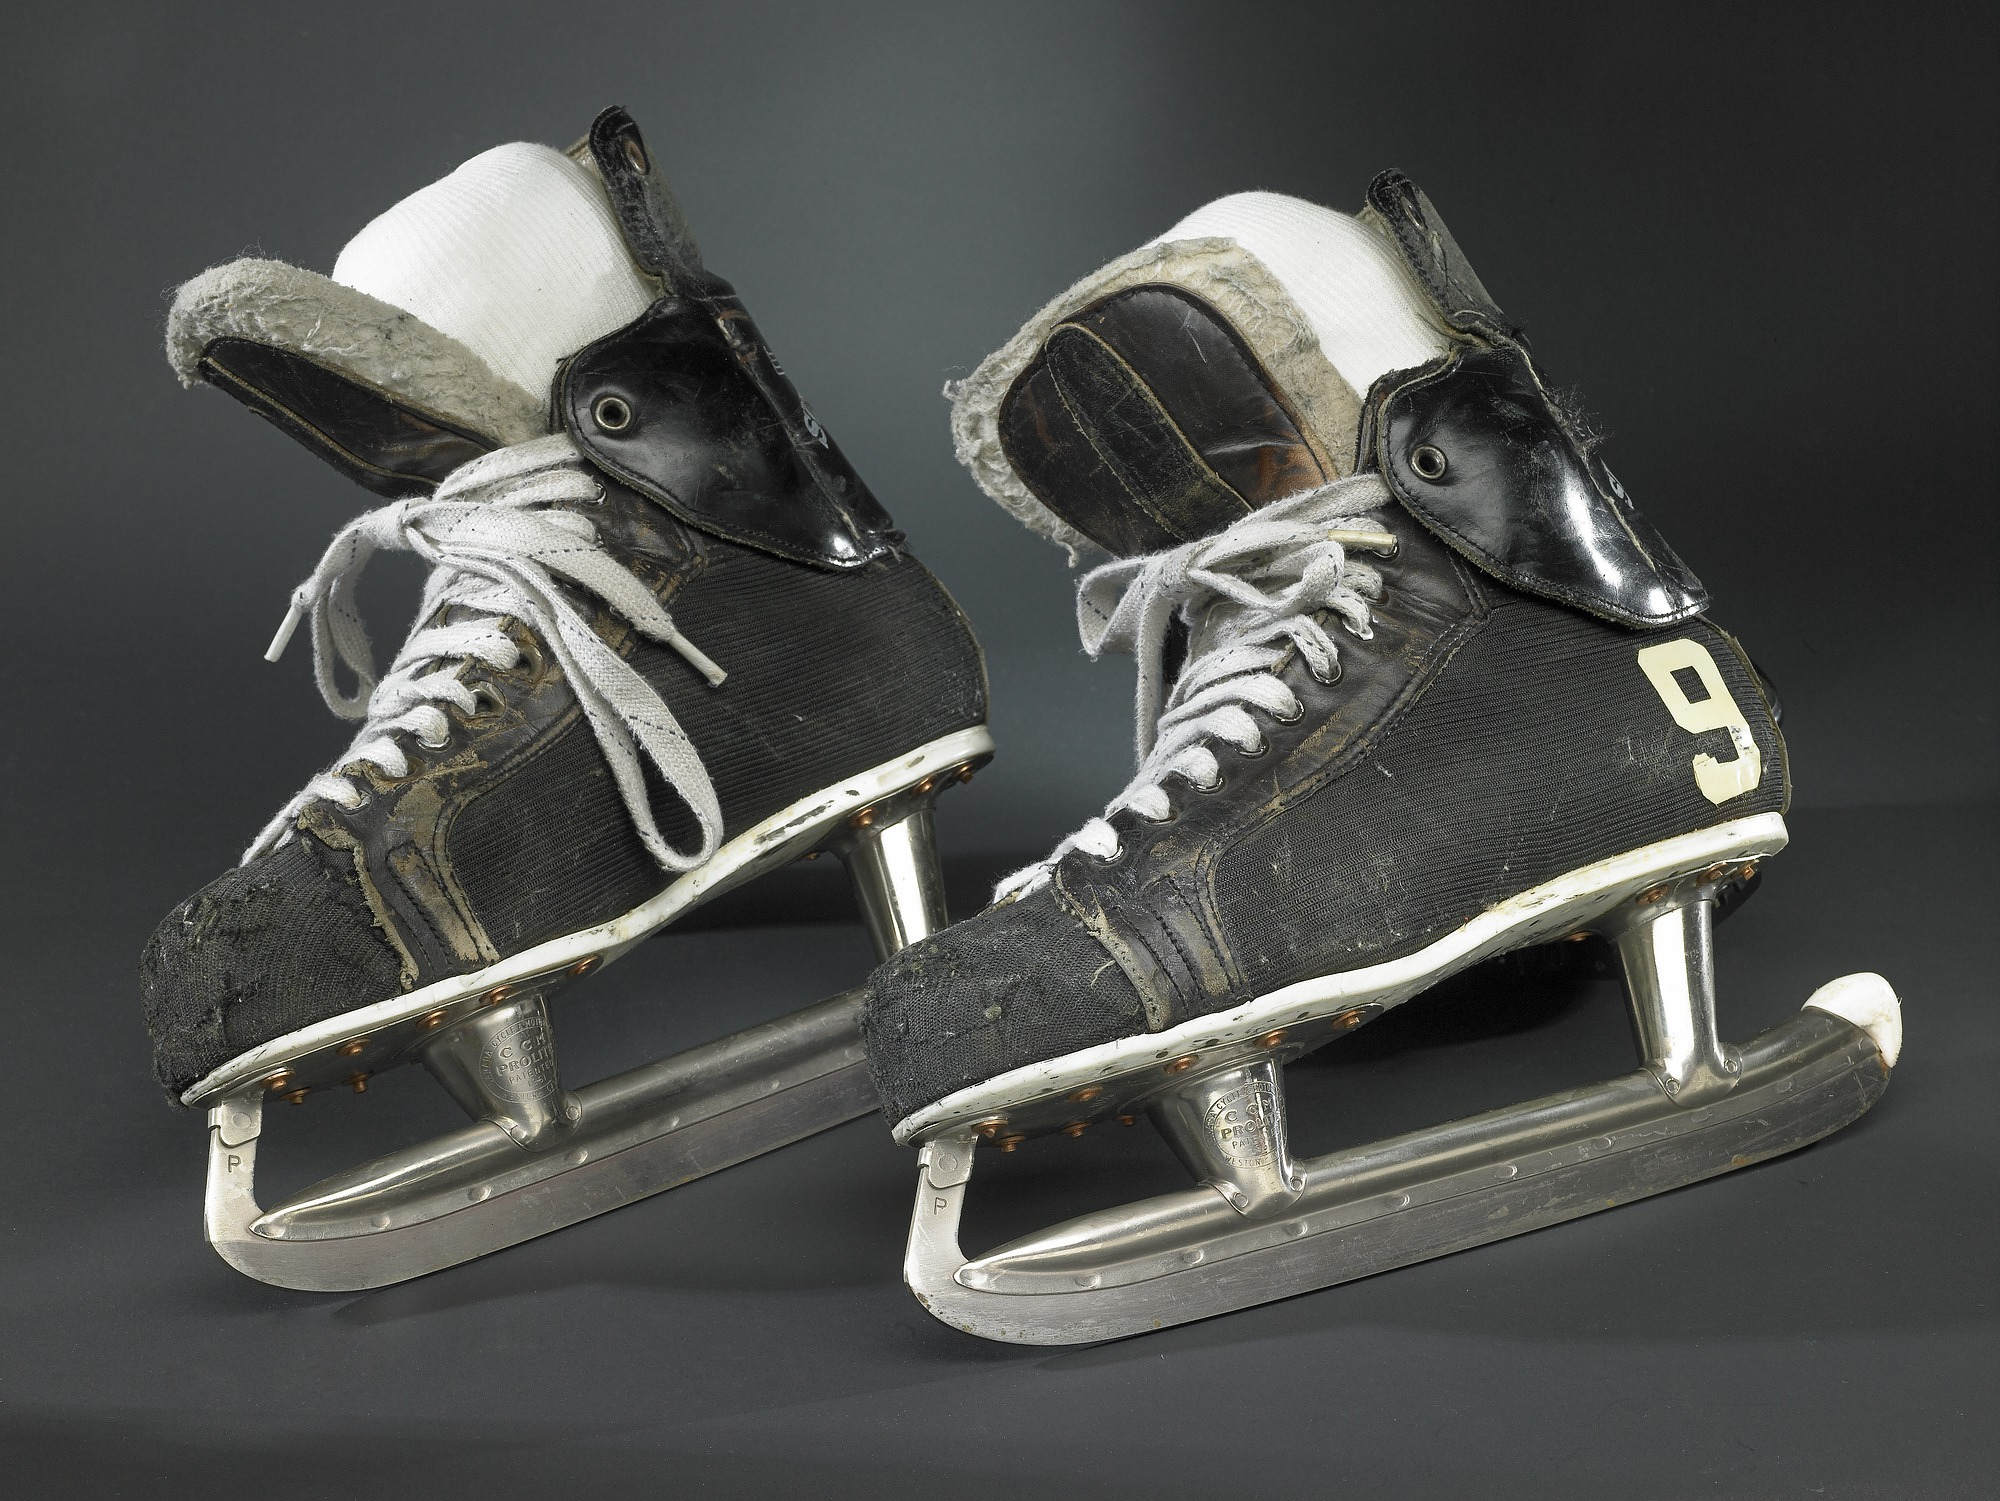 images for Ice Hockey Skates, worn by Gordie Howe